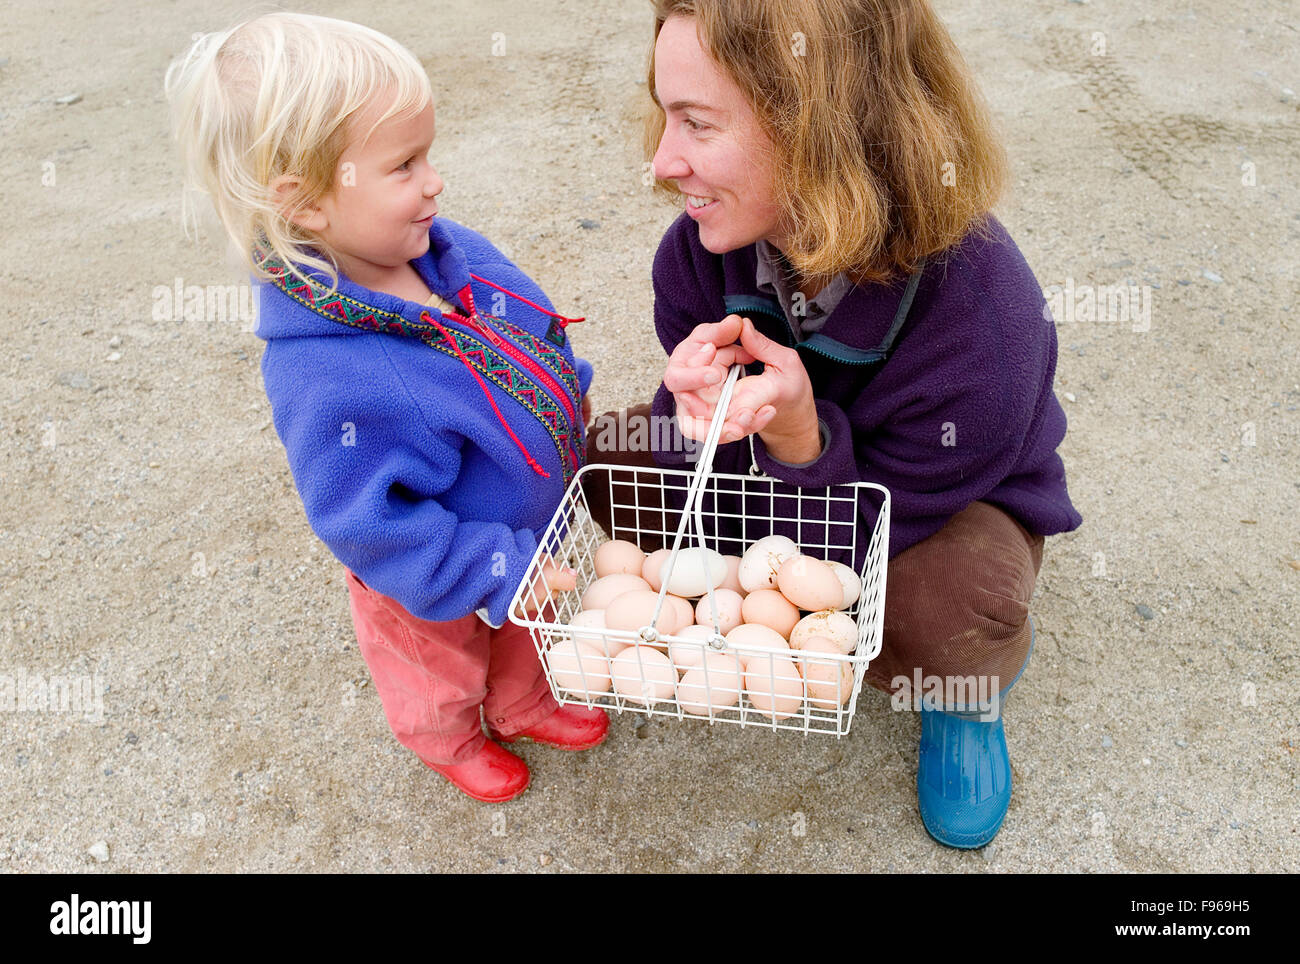 A woman talks with her daughter after harvesting organic chicken eggs together. - Stock Image